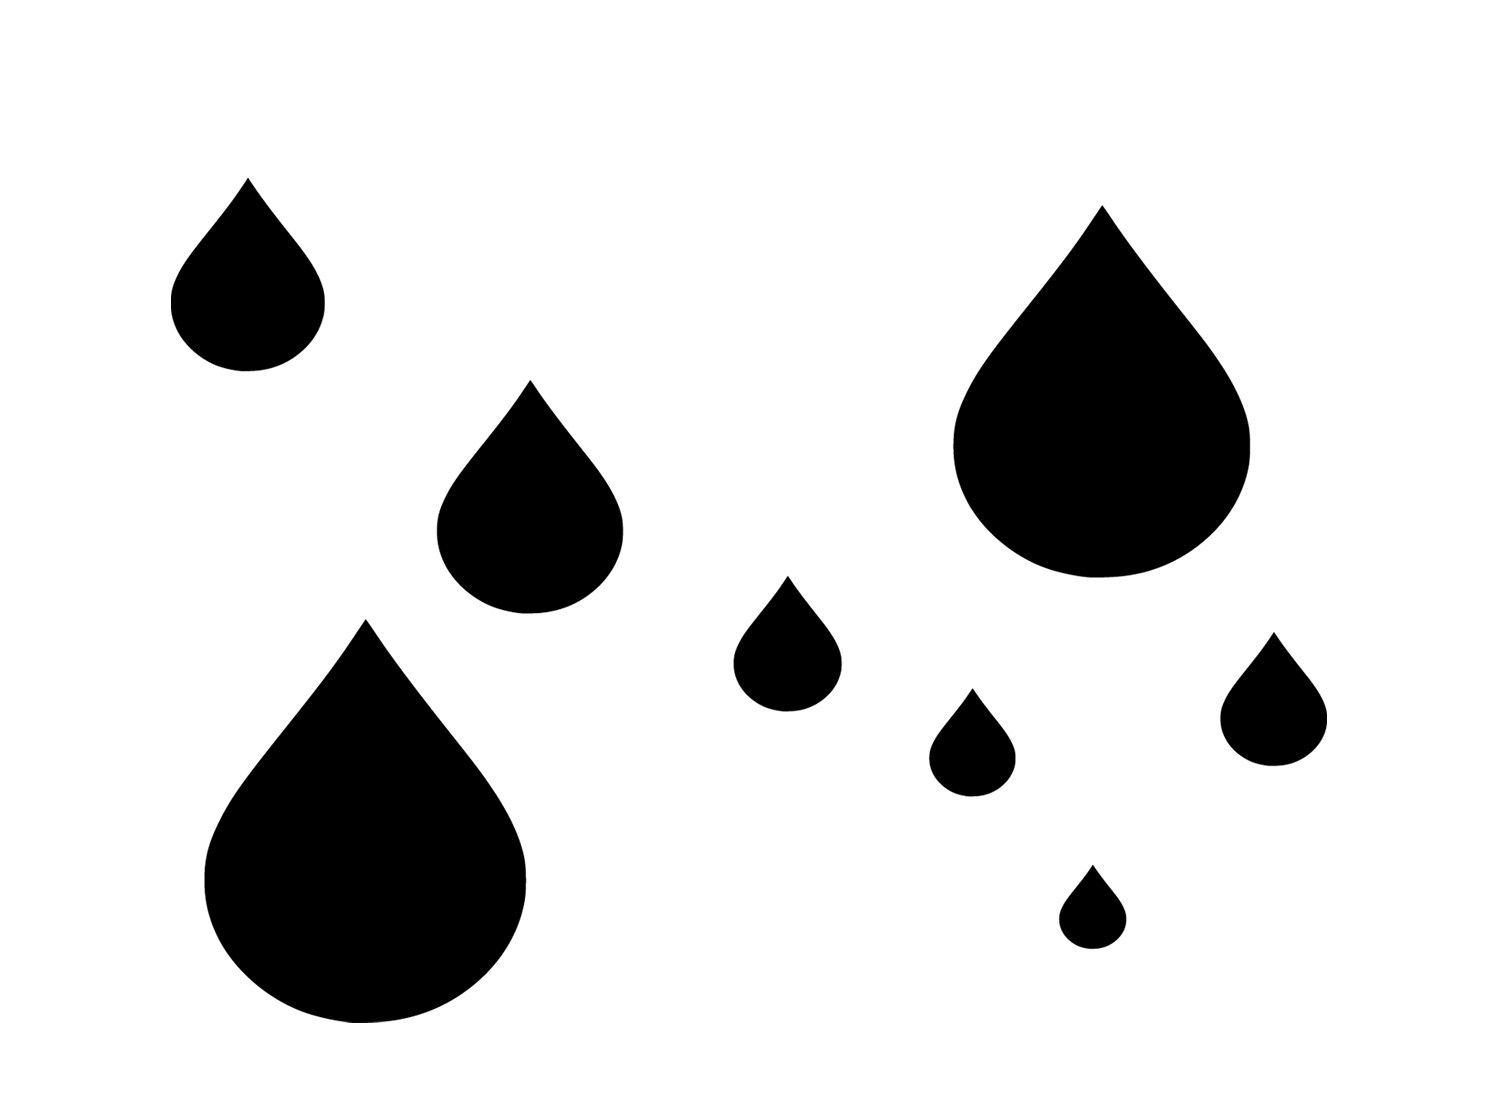 Raindrop template clipart - WikiClipArt